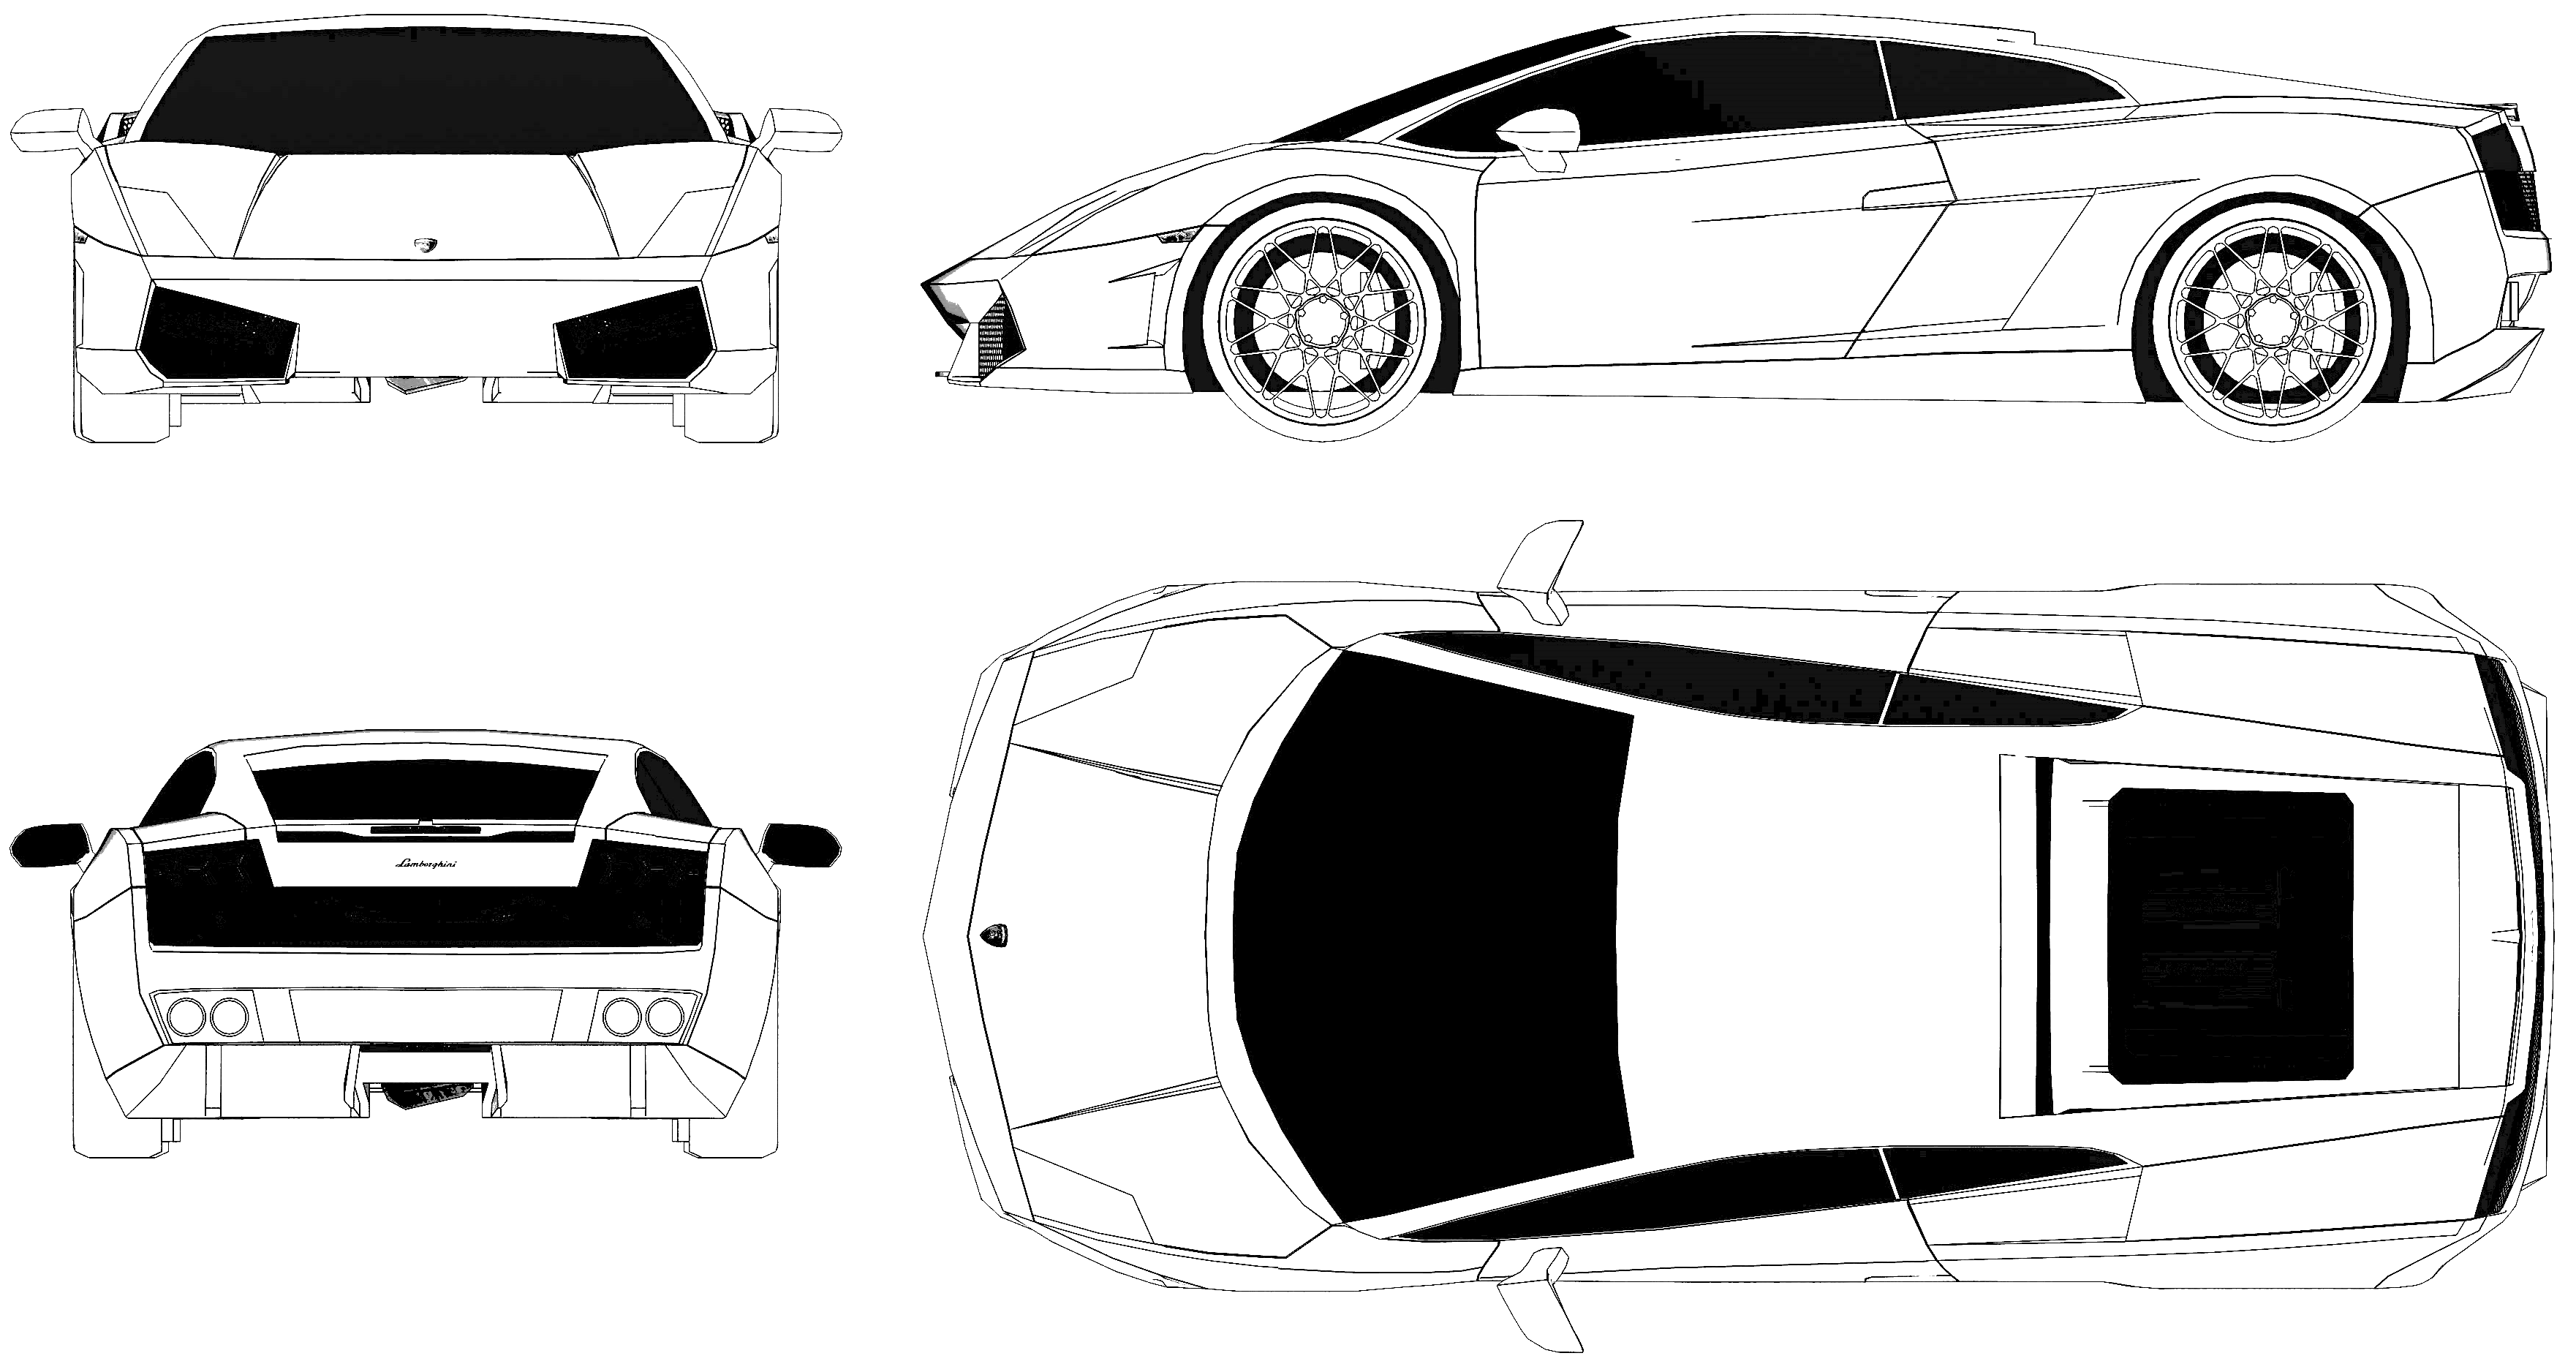 Lamborghini Gallardo Lp550 Blueprint Download Free